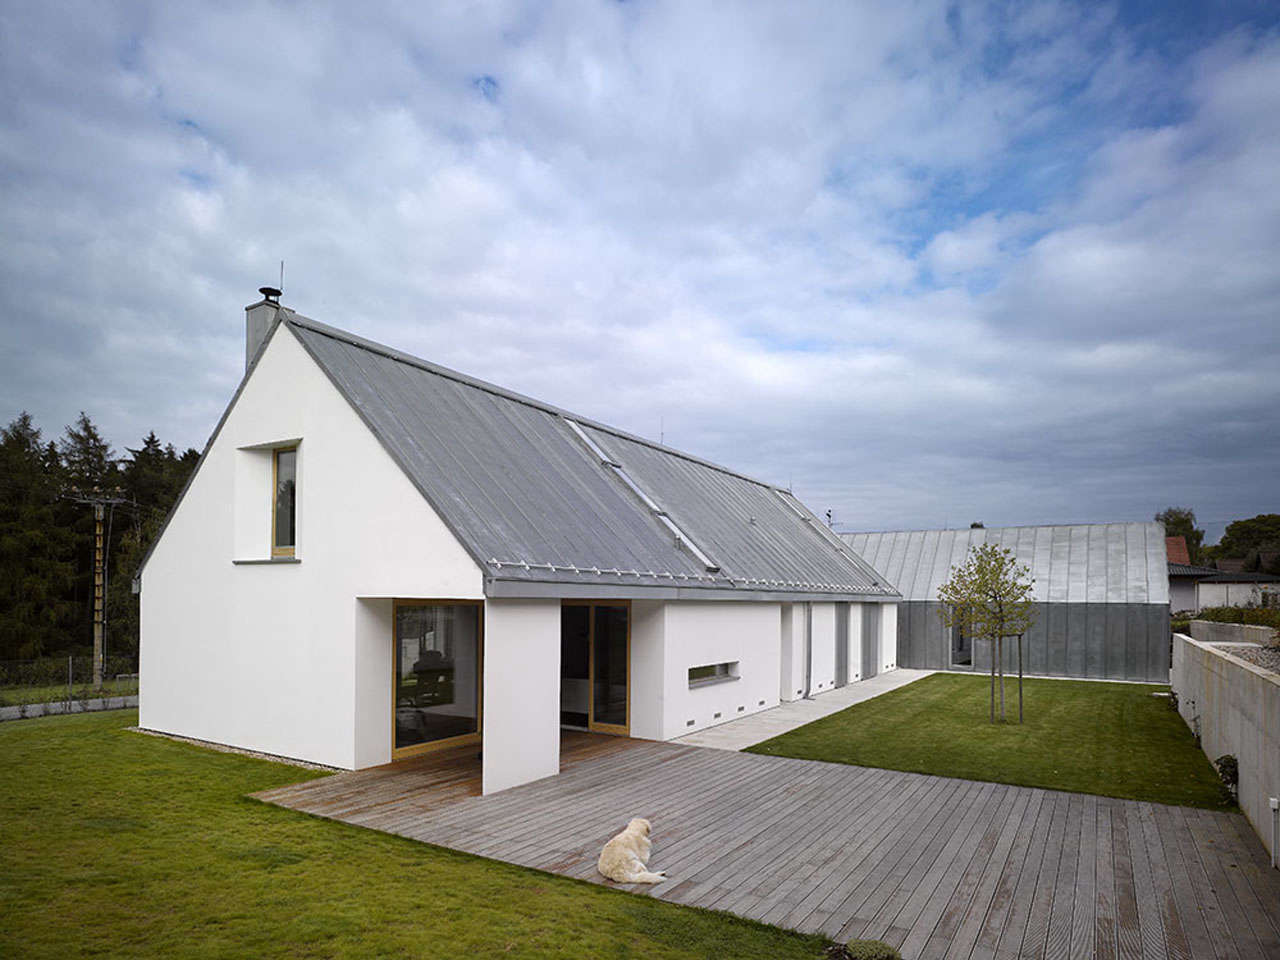 Prague-based Studio Pha designedtwo barn-like structures for afamily compound, connected by grade-level decking.Photograph by Filip Slapal, from Architect Visit: Barn-Like Living, Only Better.